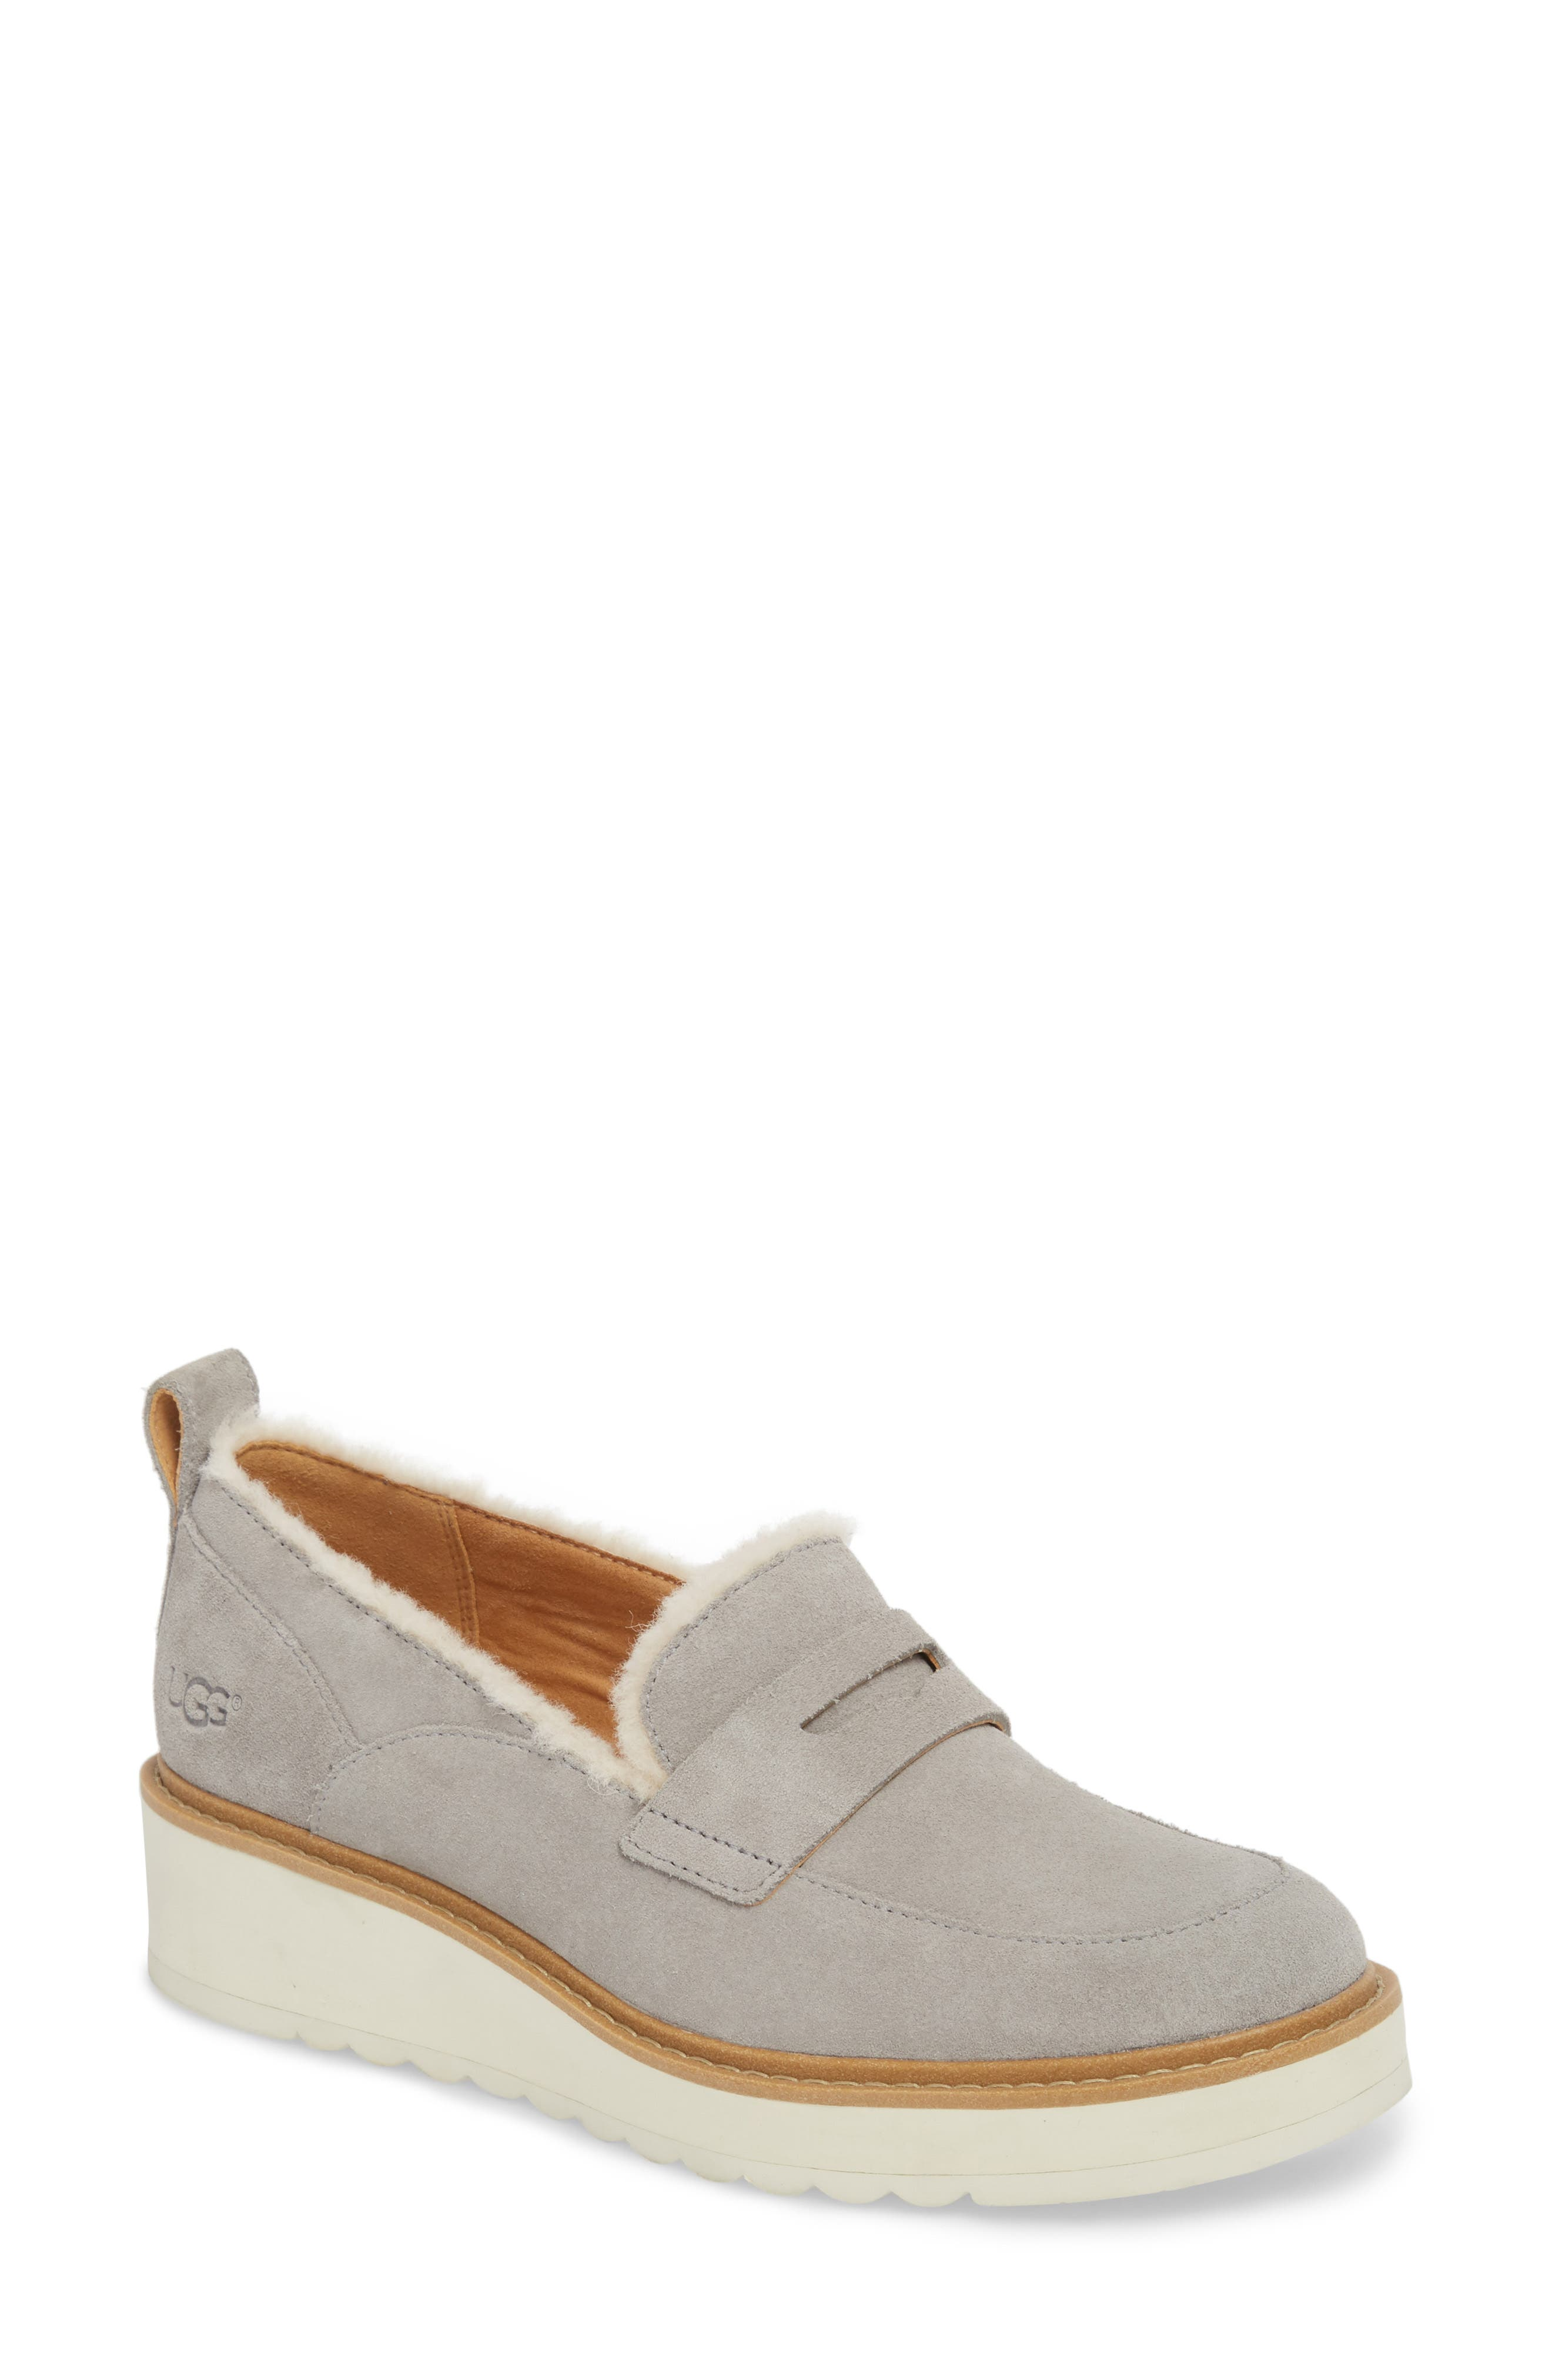 Atwater Spill Seam Wedge Loafer,                             Main thumbnail 1, color,                             SEAL LEATHER